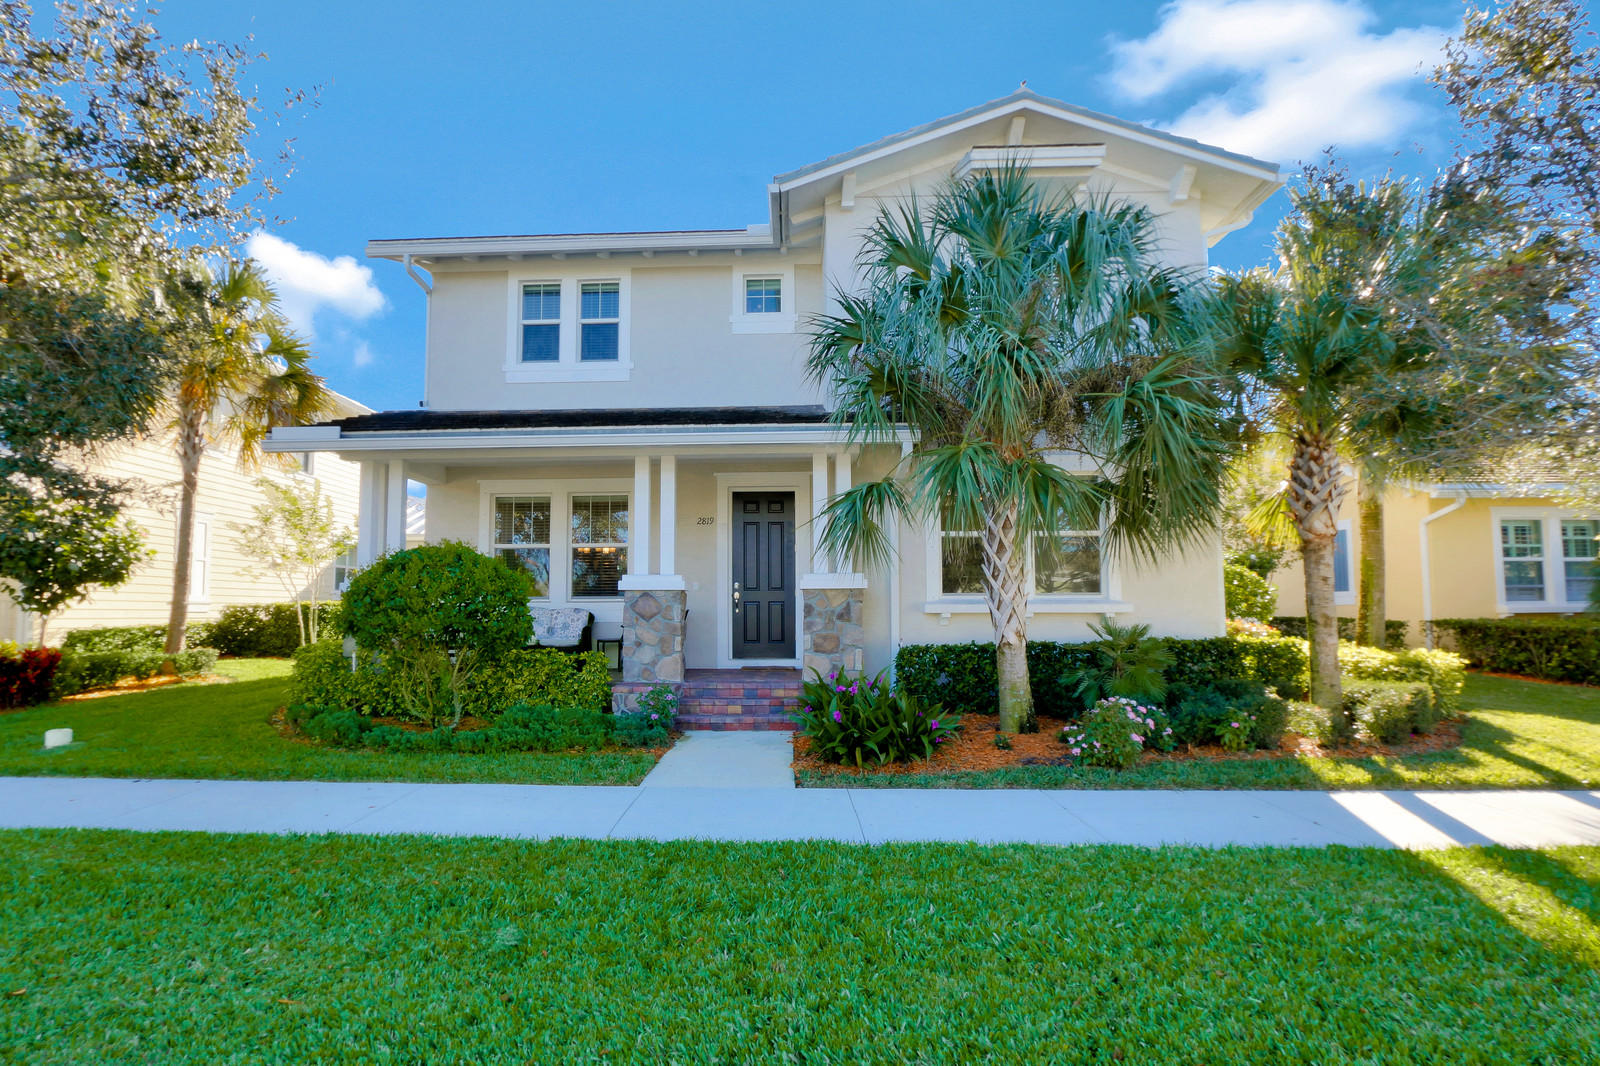 2819 Sunbury Drive, Jupiter, Florida 33458, 4 Bedrooms Bedrooms, ,3 BathroomsBathrooms,A,Single family,Sunbury,RX-10475603